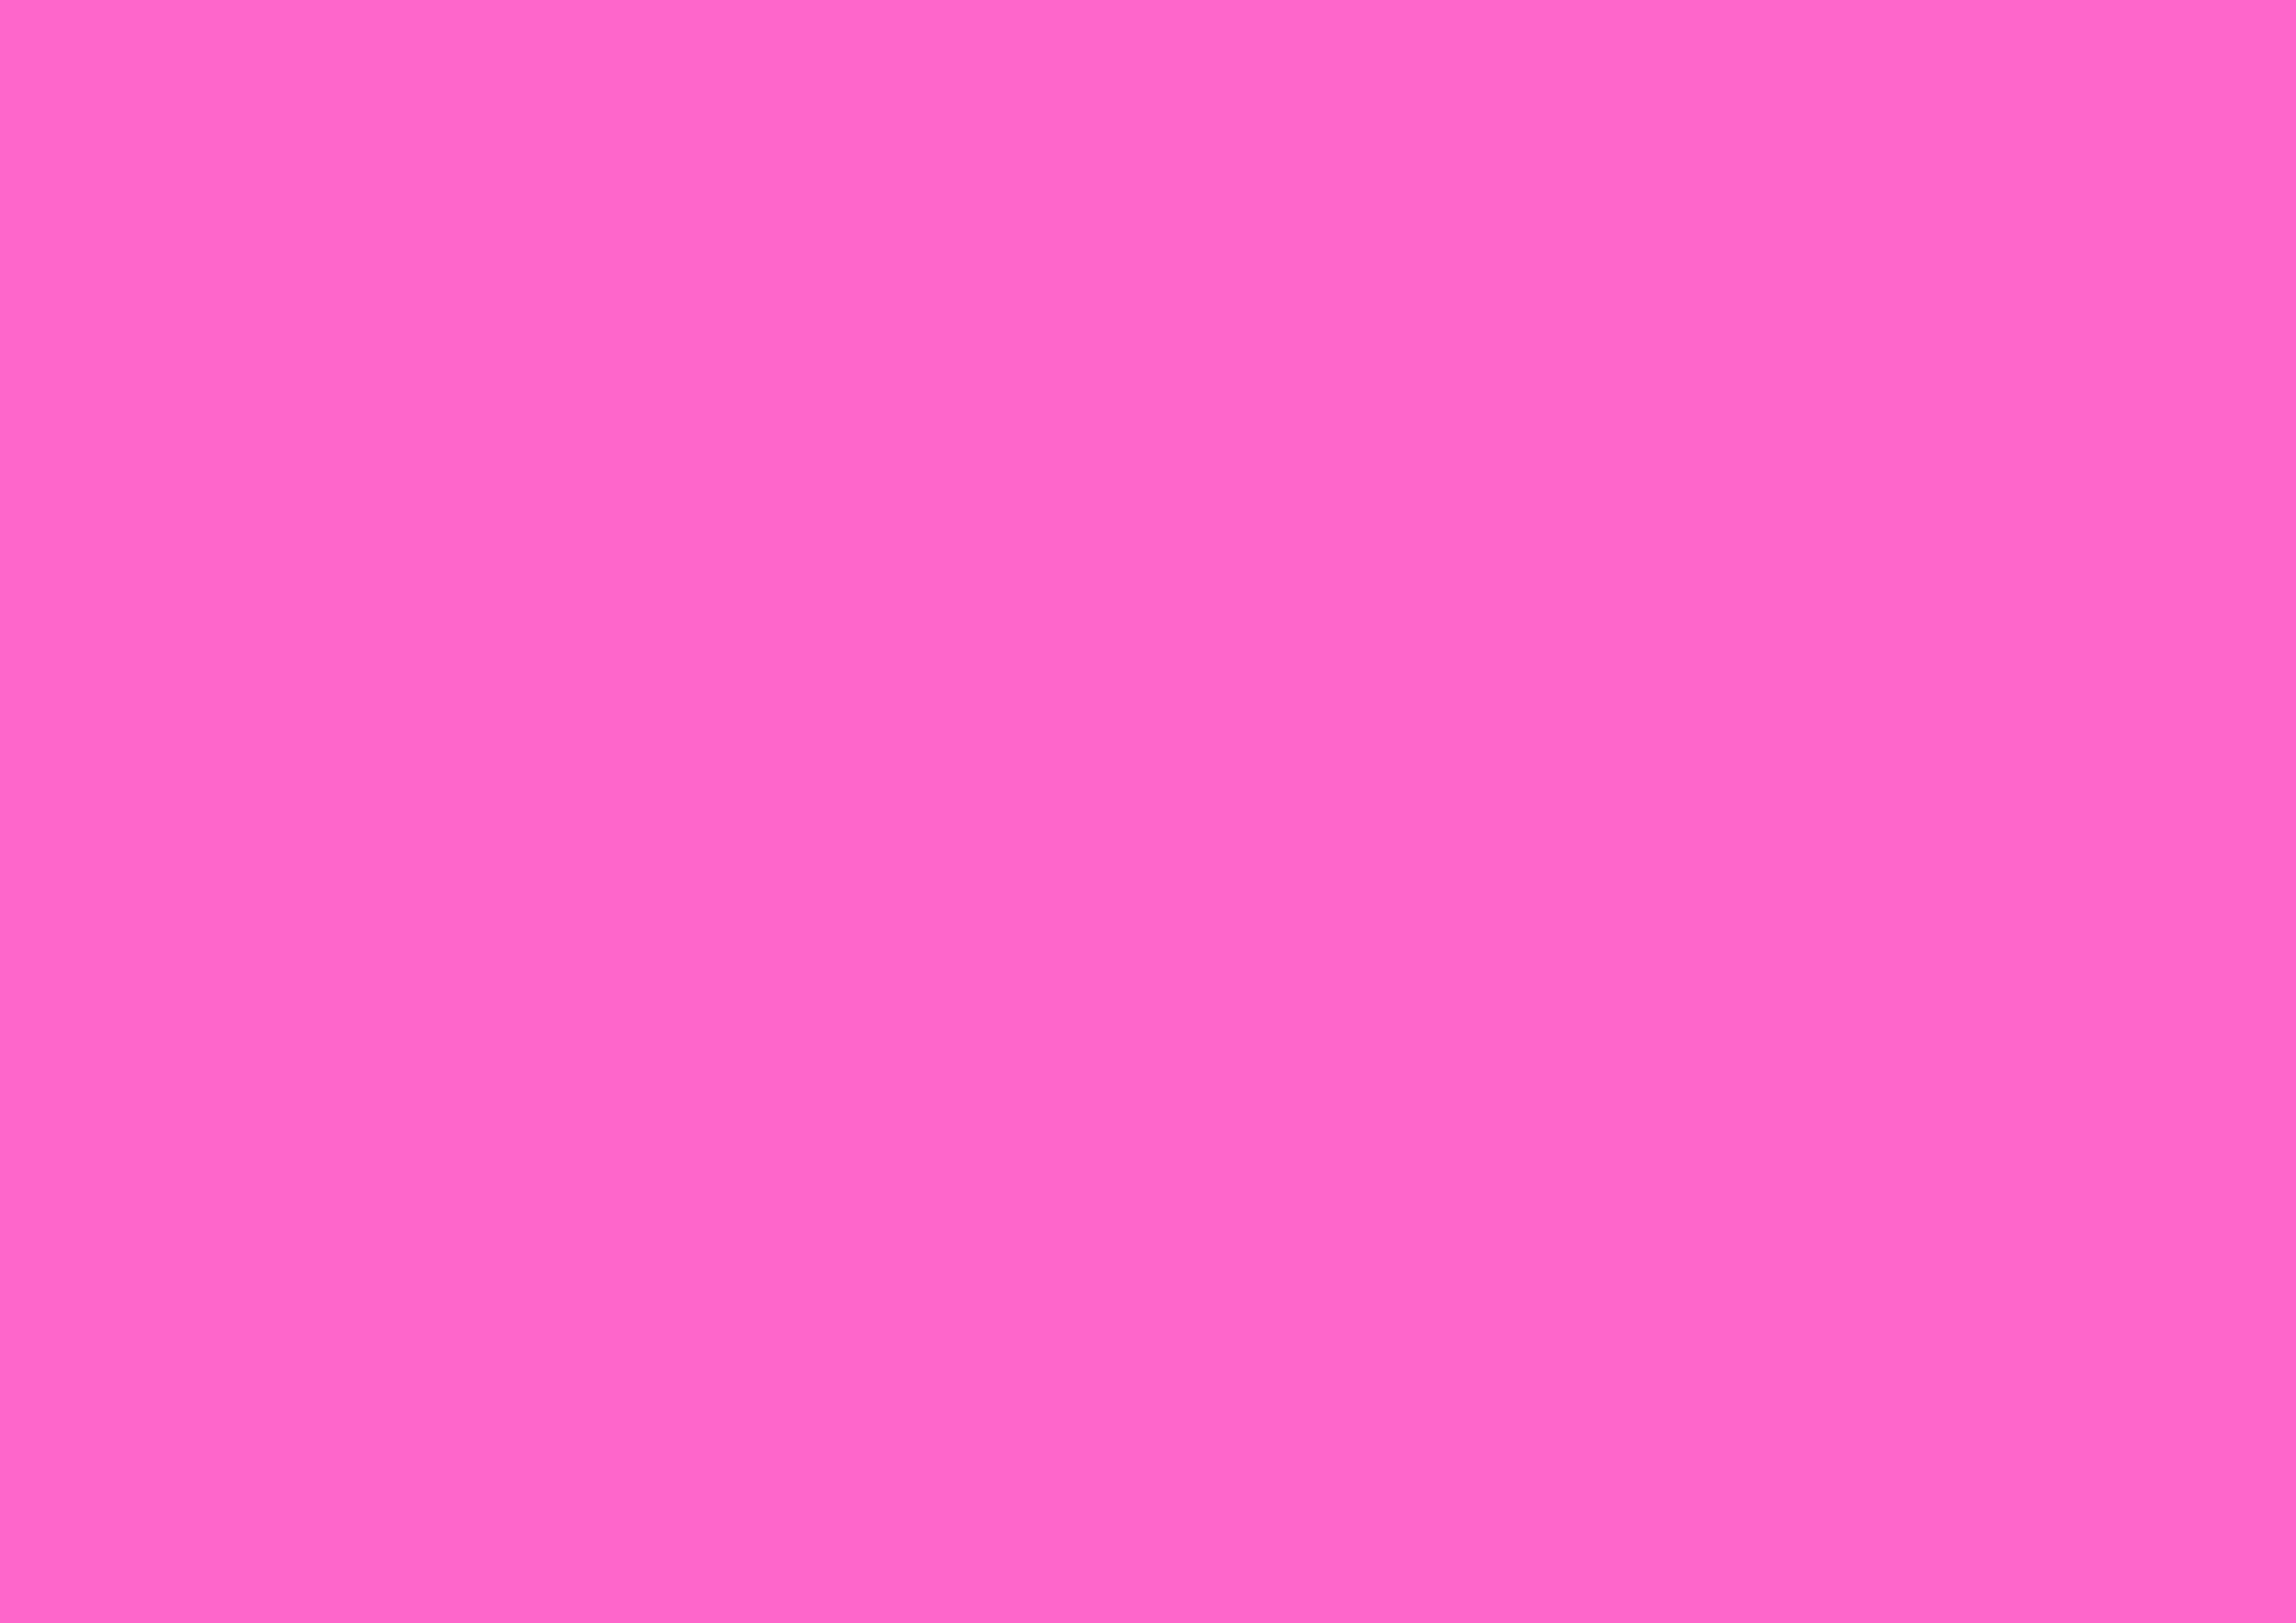 3508x2480 Rose Pink Solid Color Background